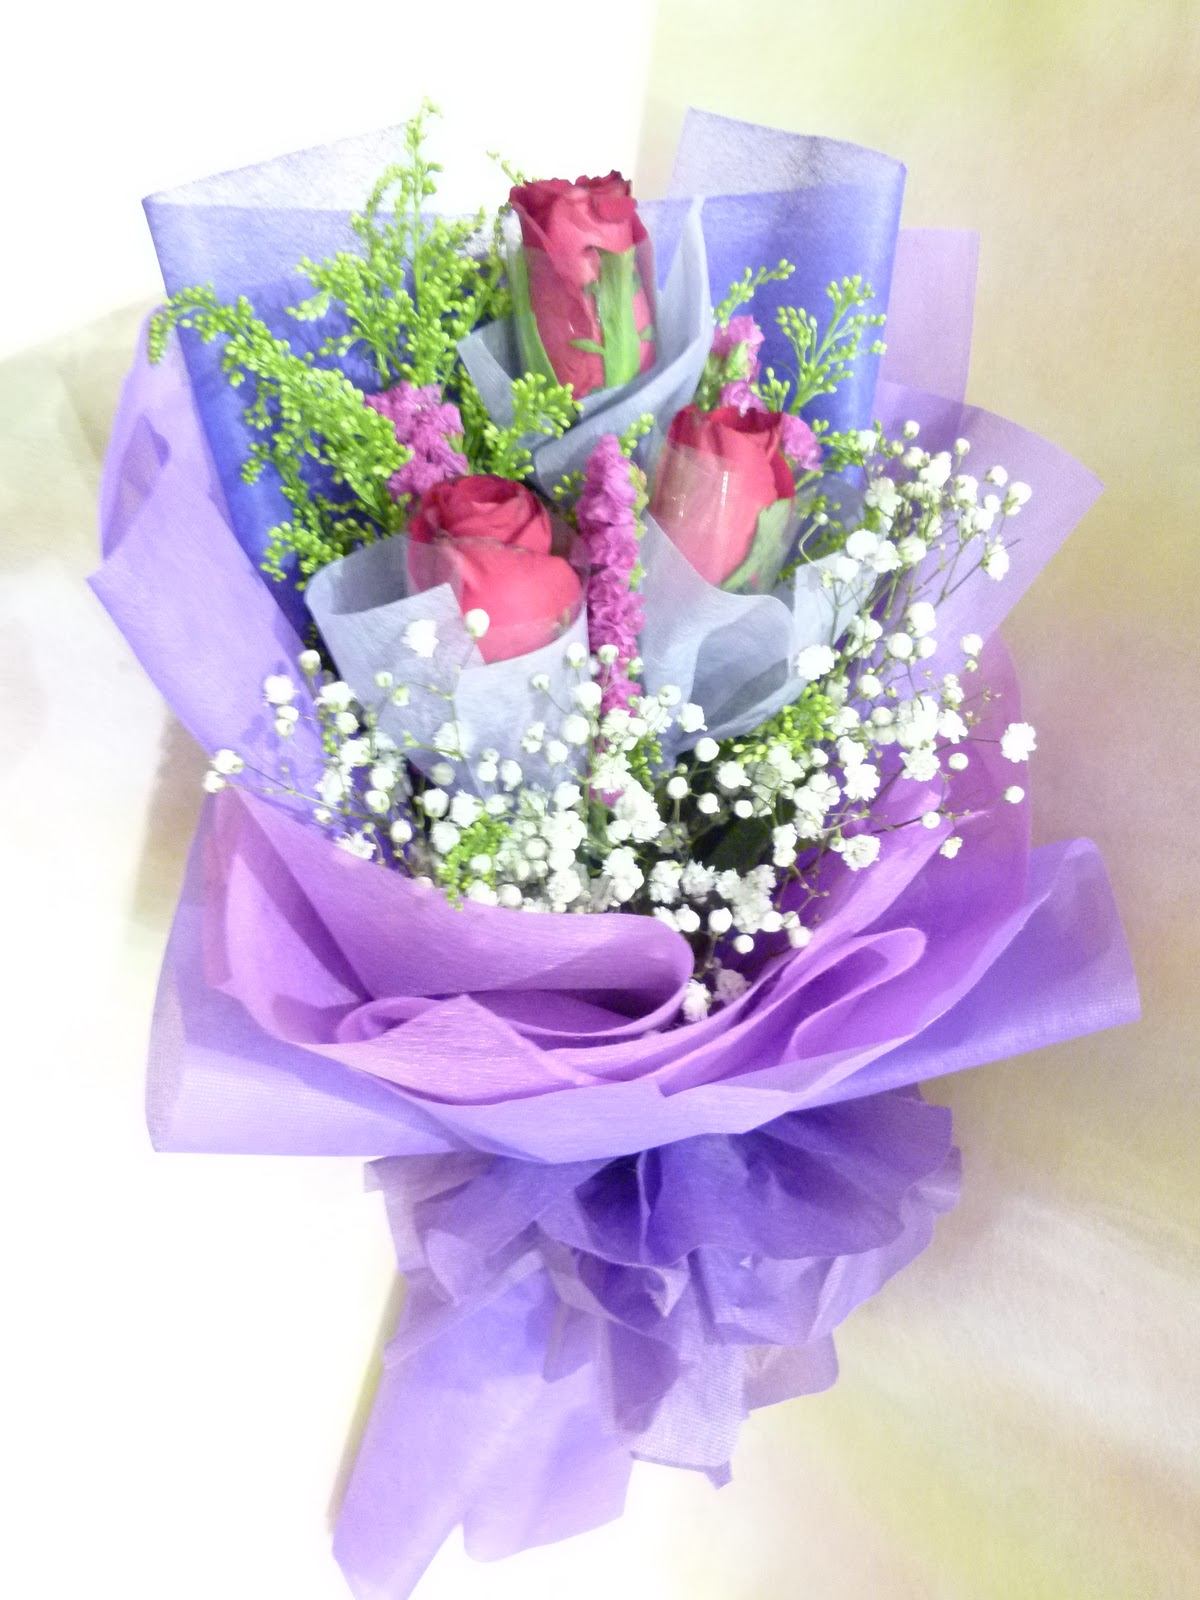 Lynette u valentine fresh flowers hand bouquet china super rose hand bouquet available in pink and red colour free gift with 12 stalks rose bouquet before 3 feb izmirmasajfo